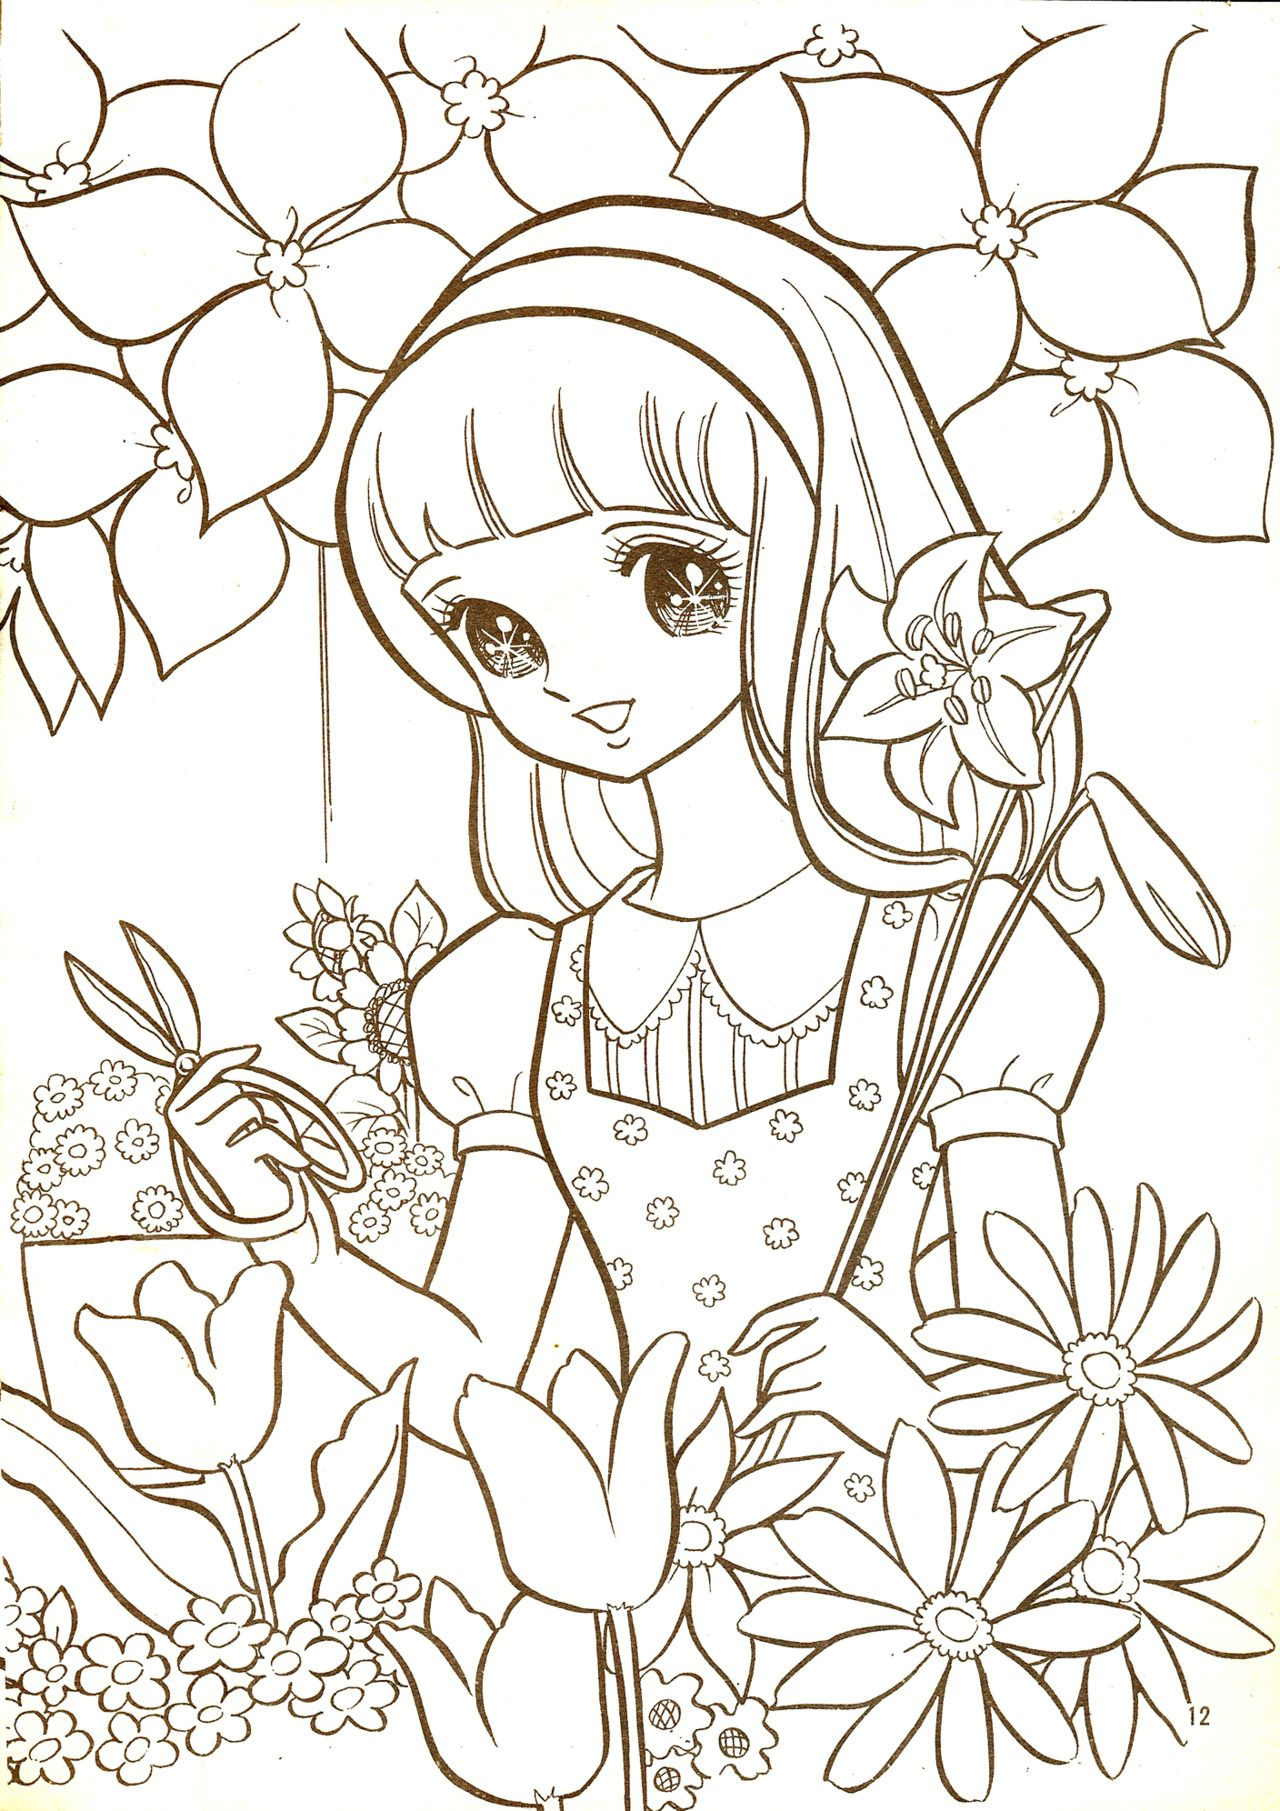 Manga Coloring Book Vintage Coloring Books Coloring Books